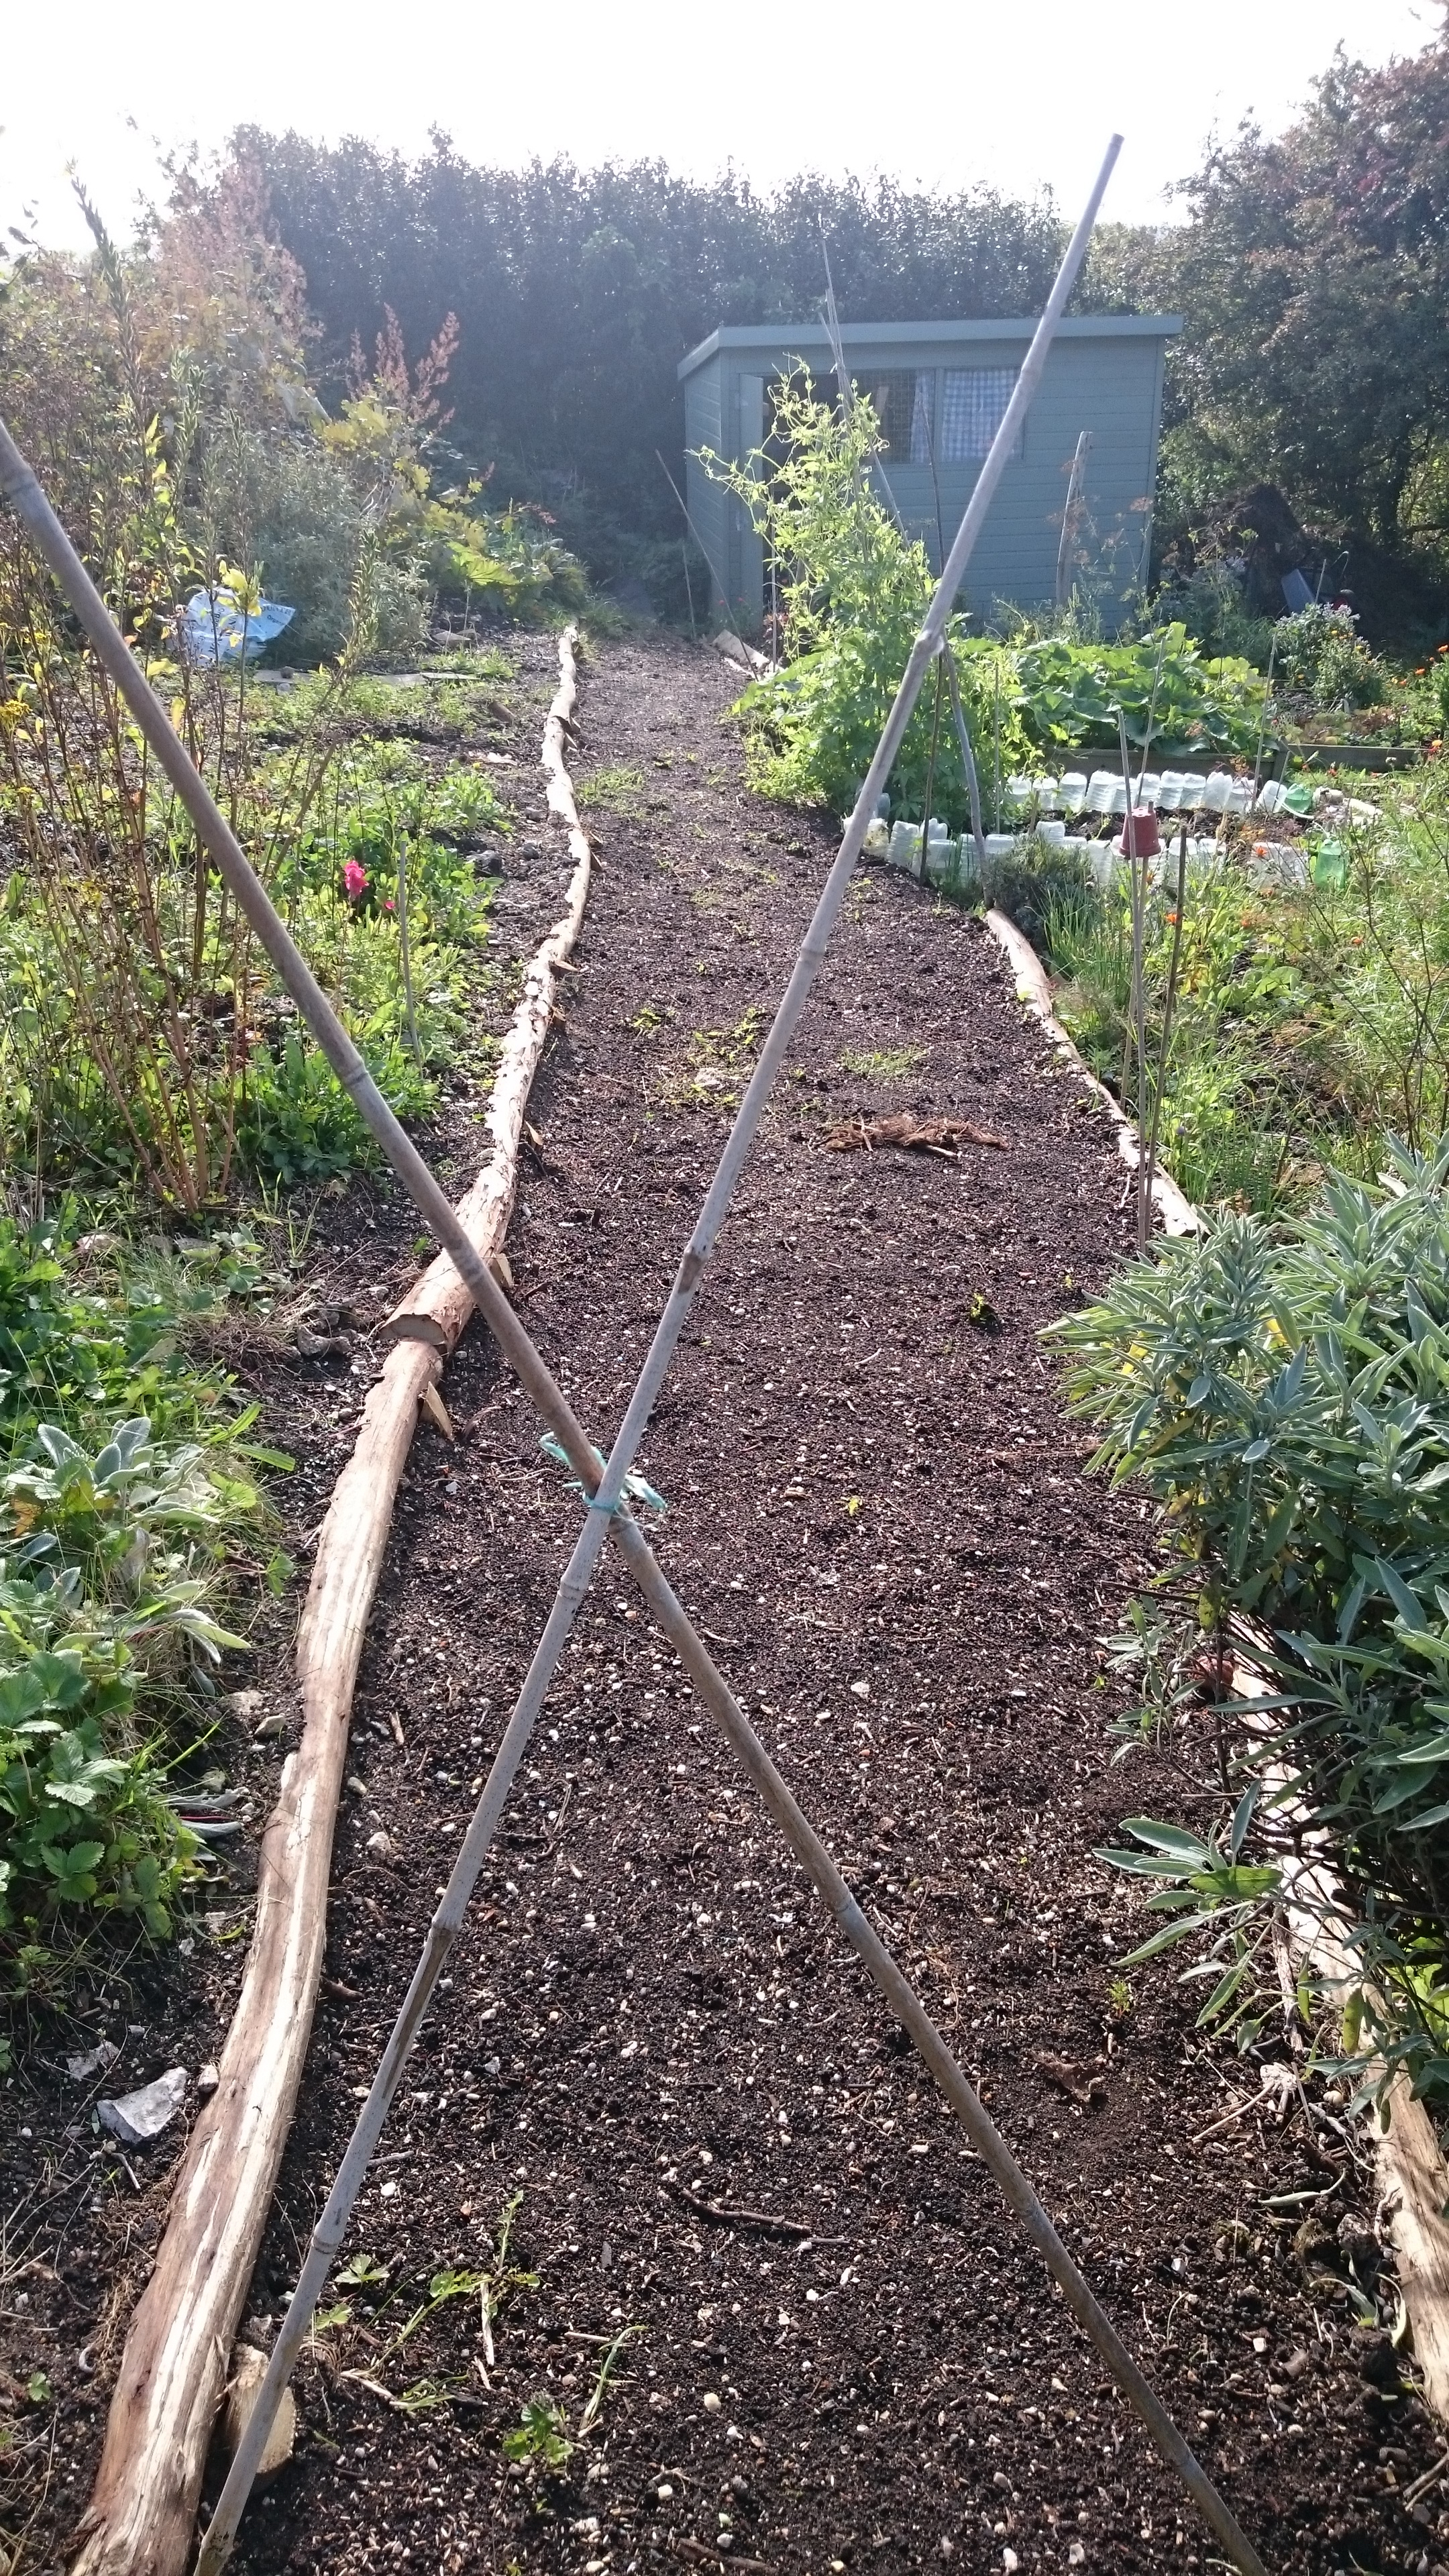 New path, with chestnut borders, seeded with grass